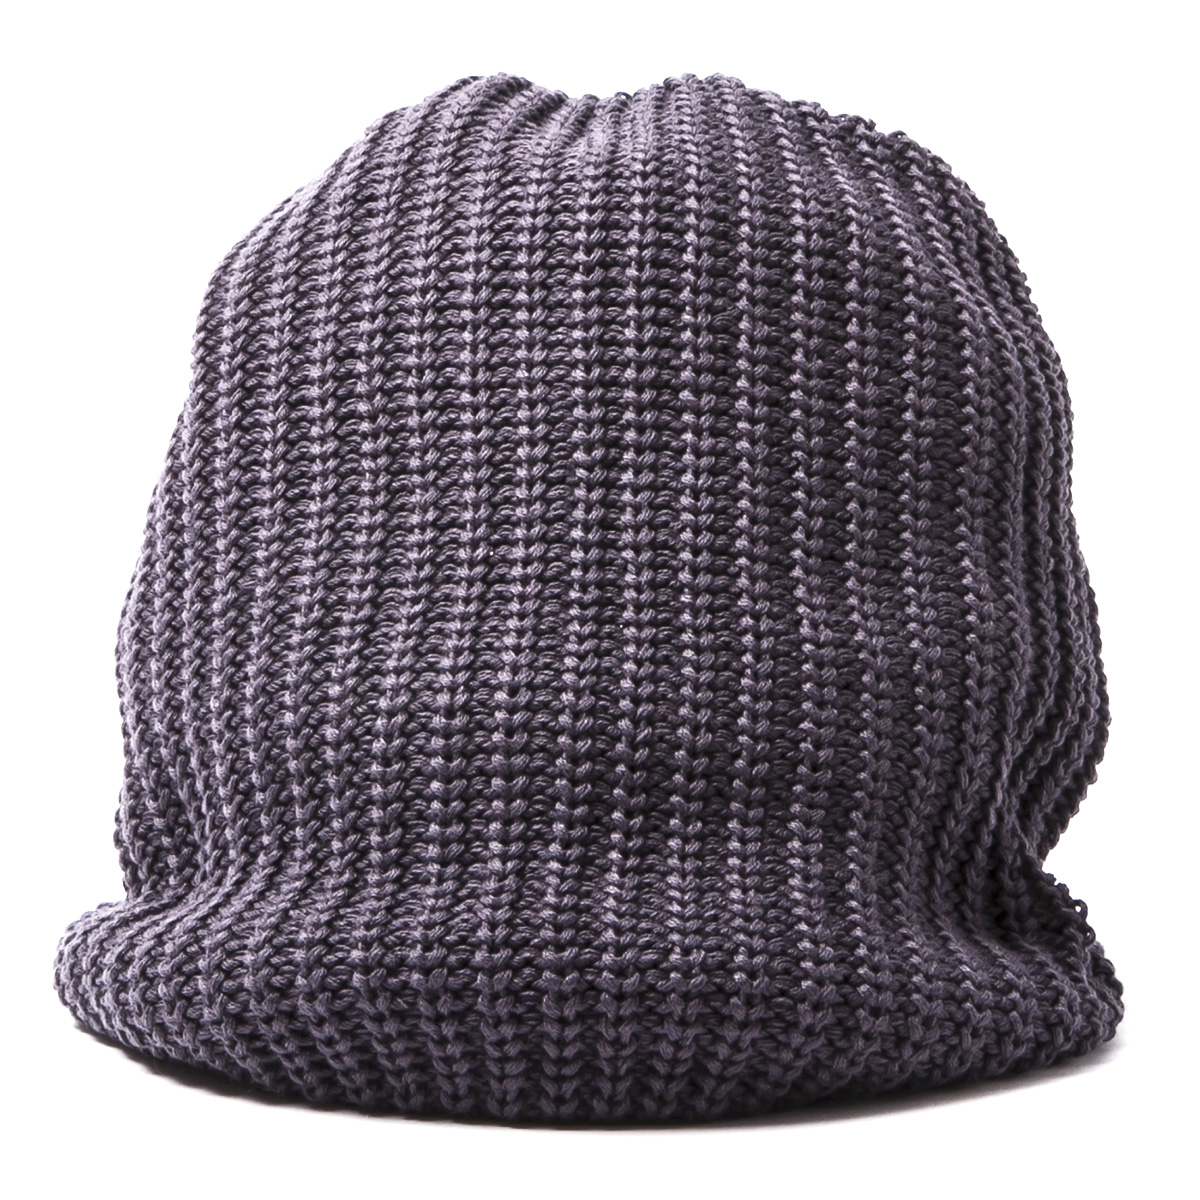 With gather large knit hats knit CAP, Knit Cap, men and women, hat and cold  and beanie Gash and-unisex-BIG SIZE, mail-order, big hats and fashion